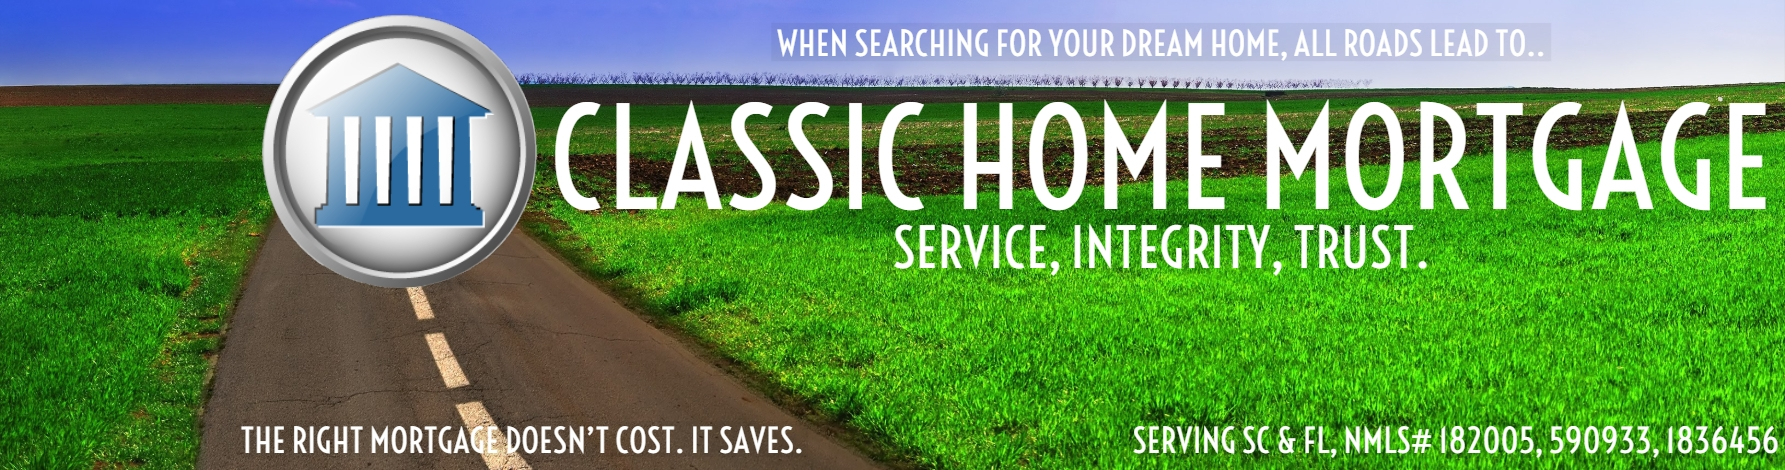 Classic Home Mortgage - South Carolina & Florida